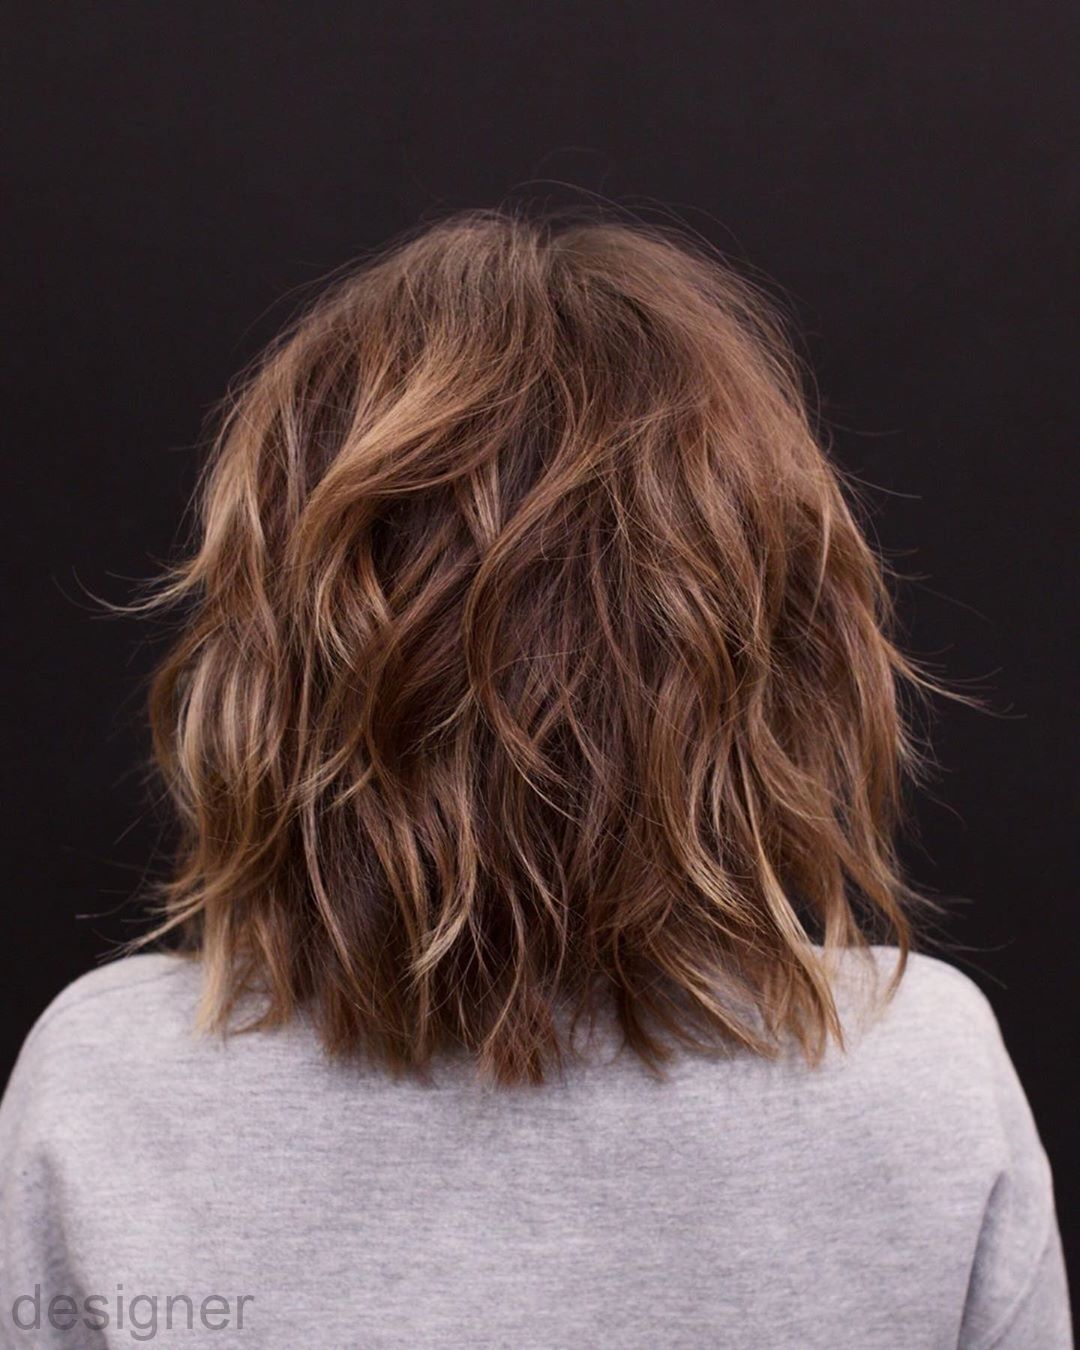 How To Get Big Waves In Hair Tutorials Best Hair Styles For Turkey Neck How To Hair Styles Step B In 2020 Layered Bob Hairstyles Hair Styles Bob Hairstyles